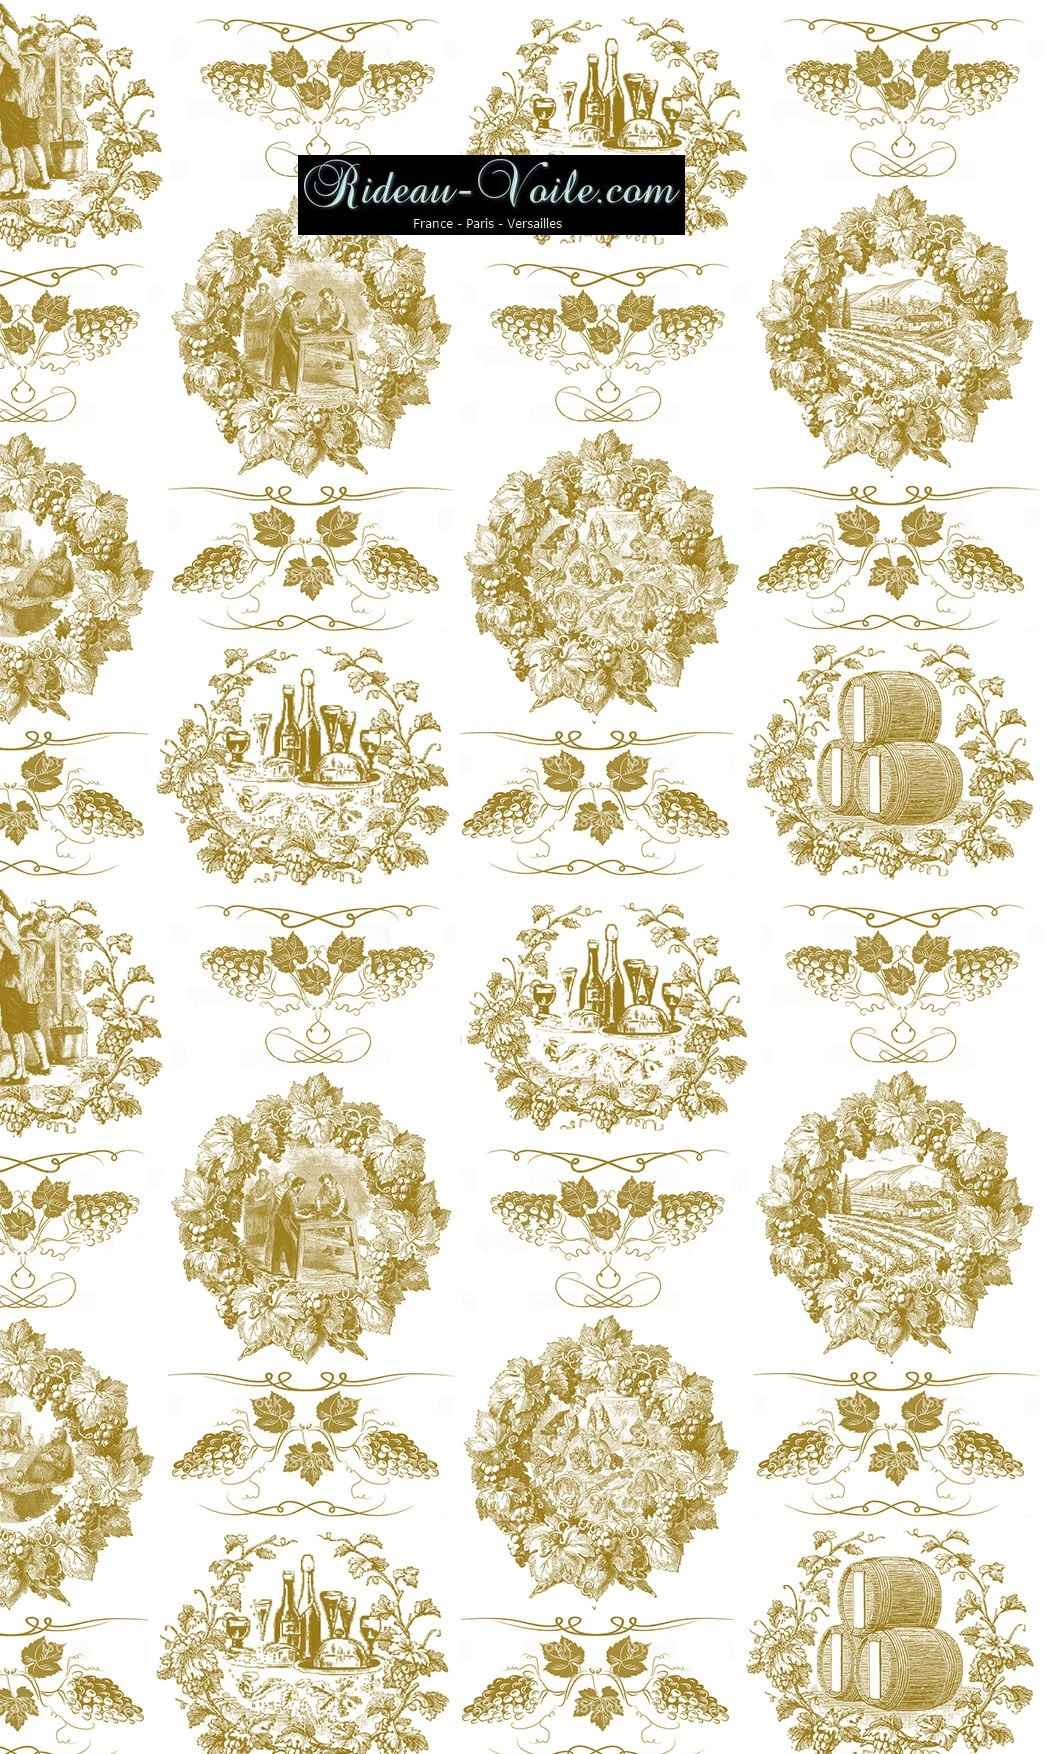 Toile de jouy tissu motif imprimé ameublement décoration tapisserie linge de maison housse coussin couette luxe lit fabric pattern printed home furnishing decoration tapestry linens cover cushion quilt luxury upholstery or golden gold